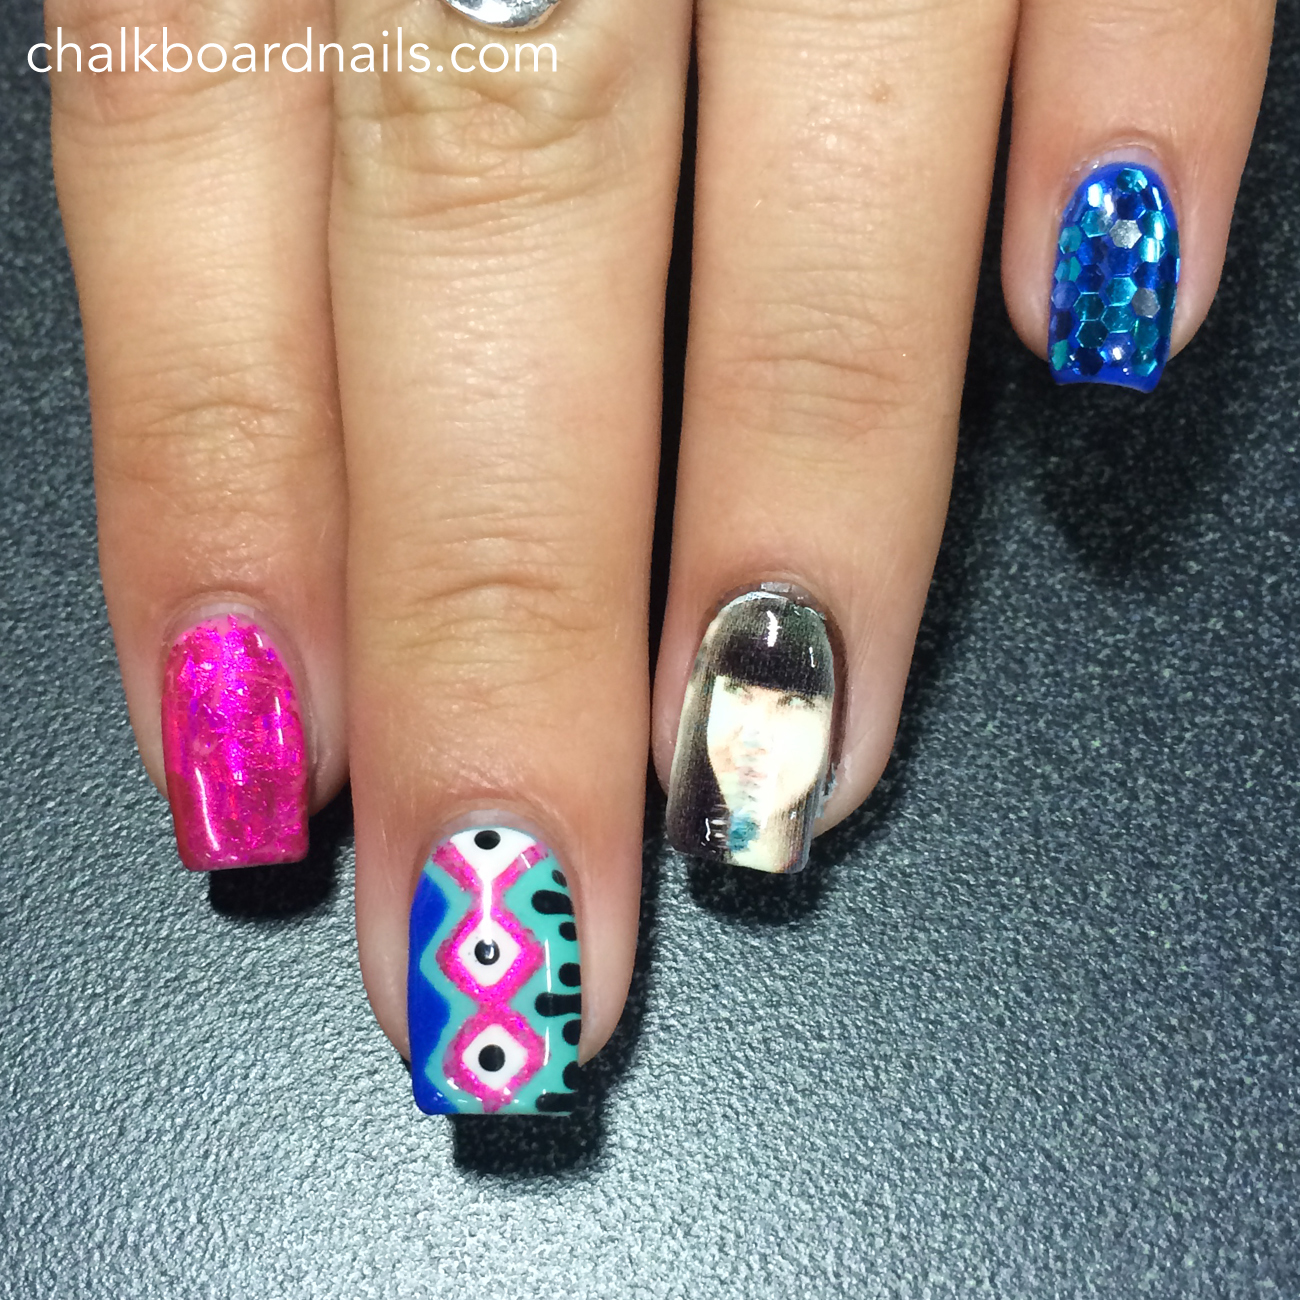 Cosmoprof North America 2014 Gels And More Including Swatch Strips A Nail Printer And